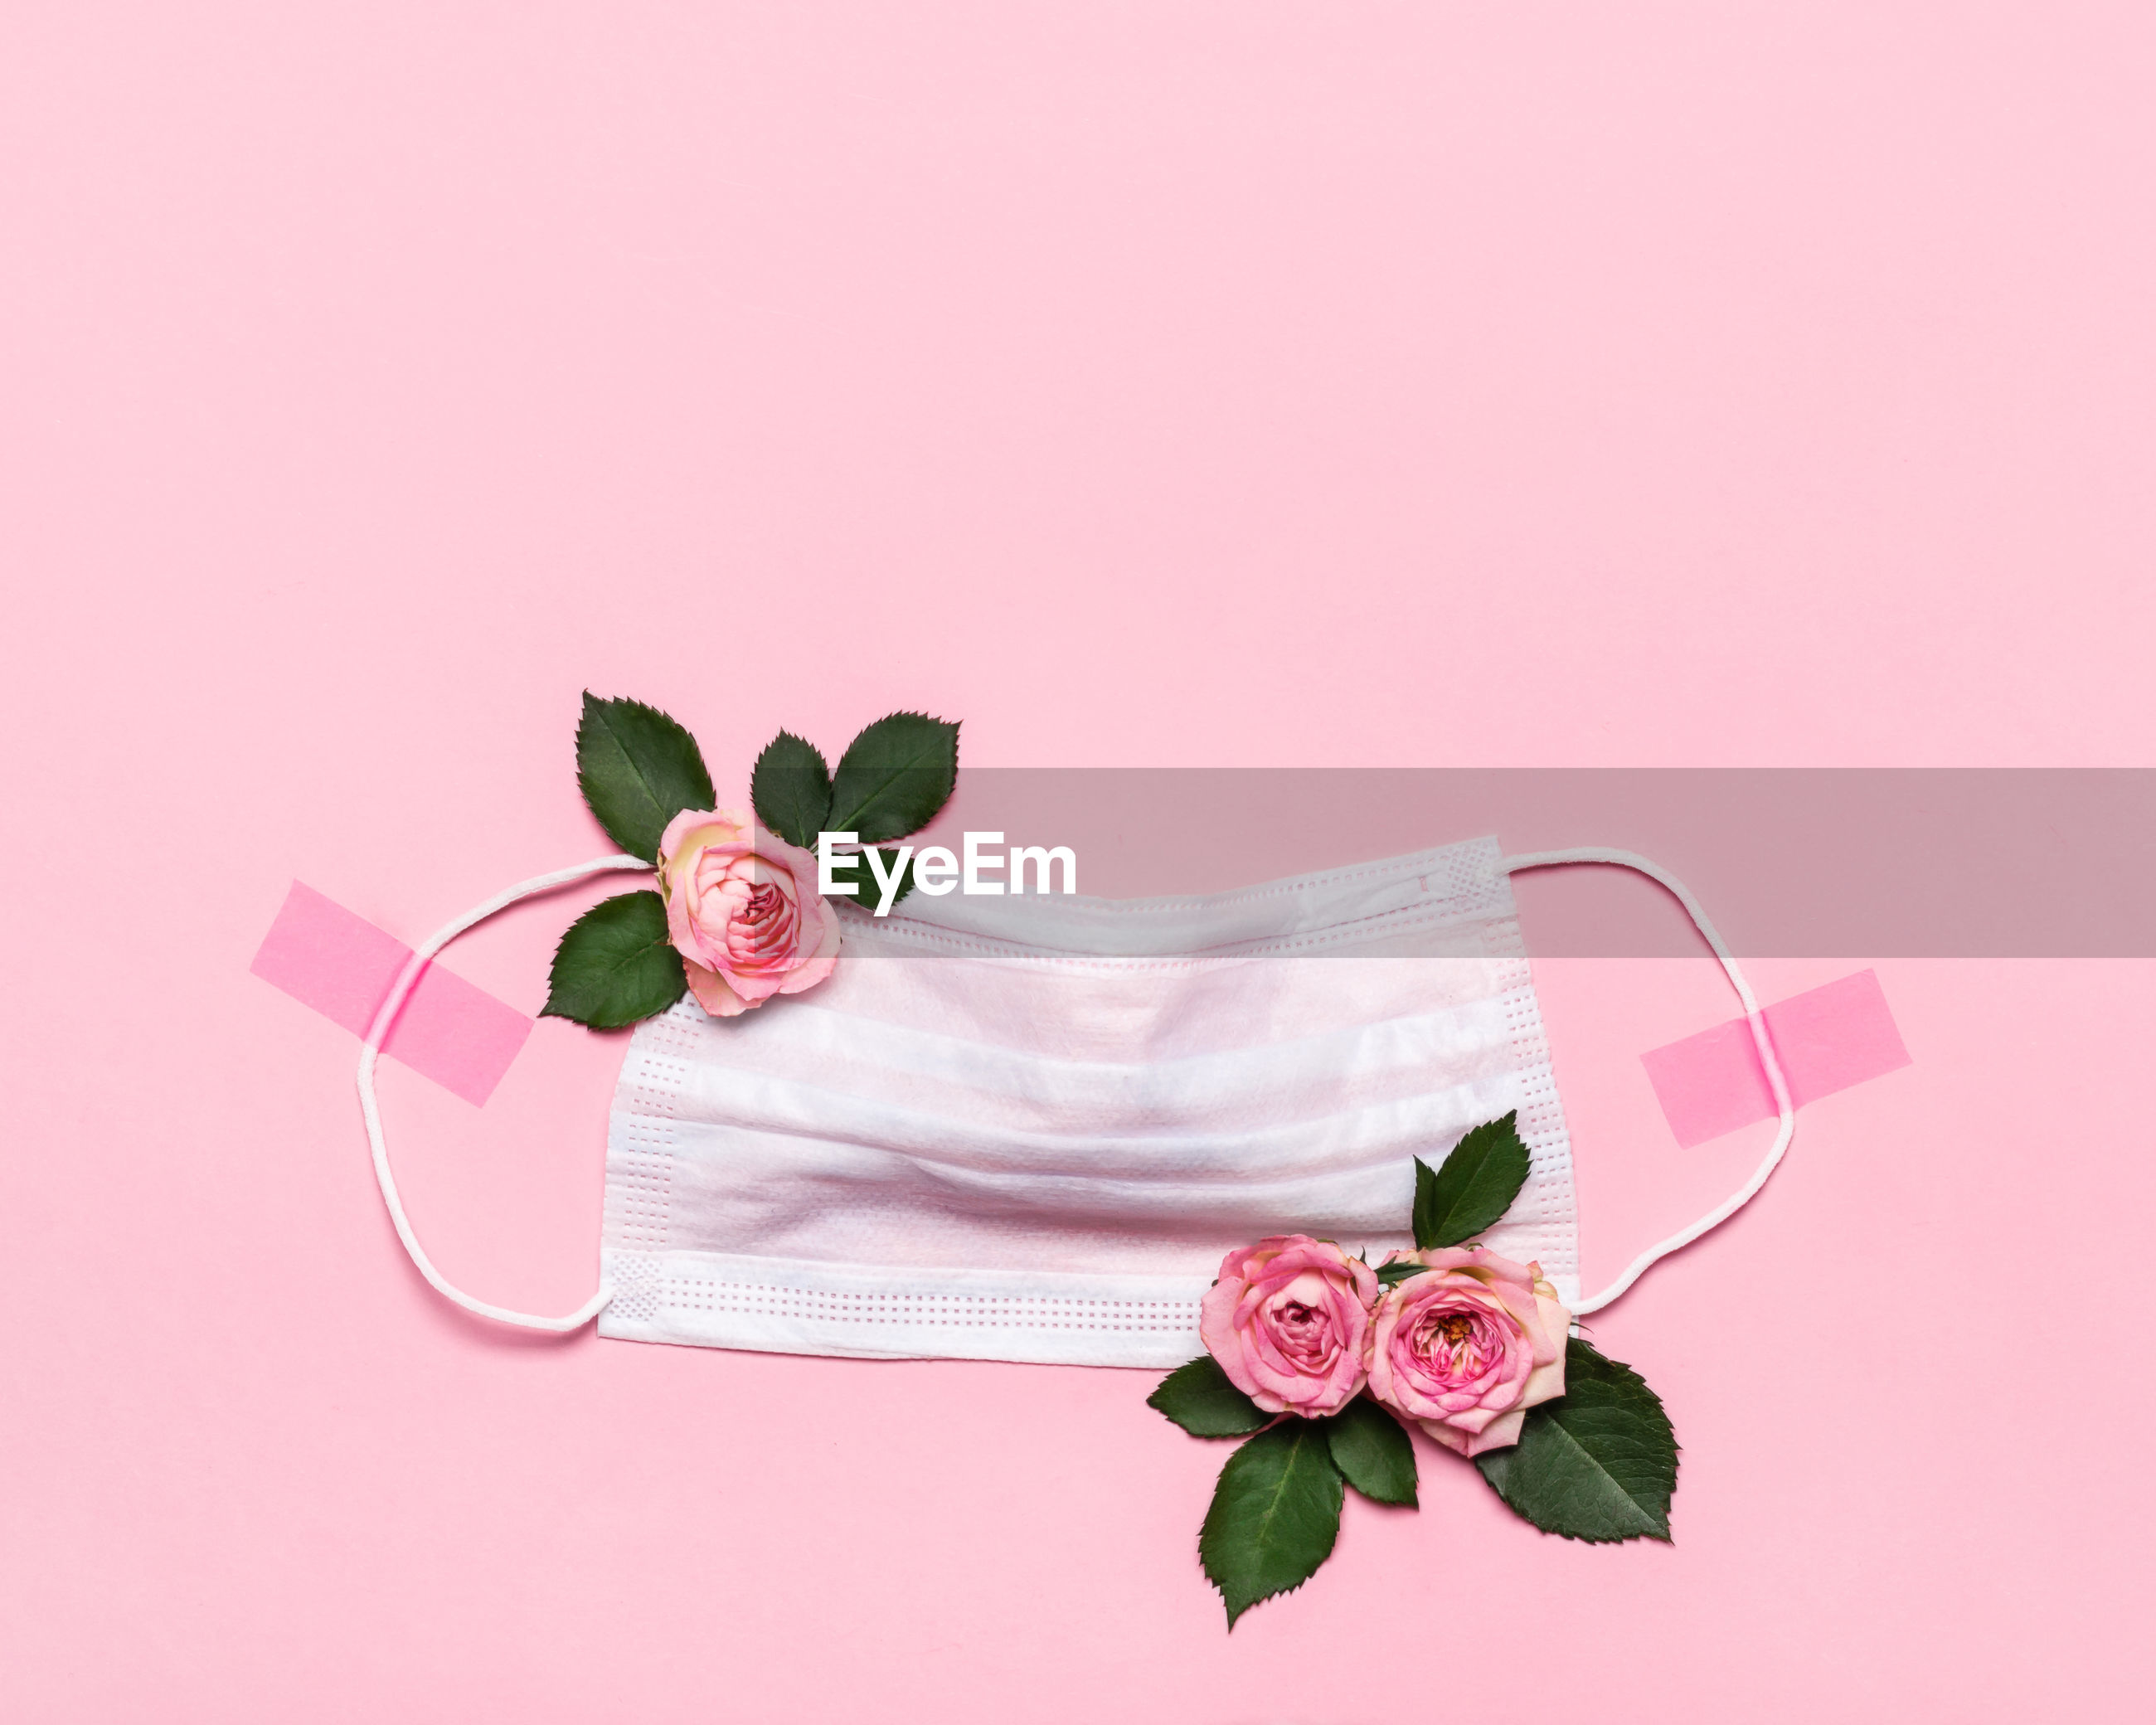 PINK ROSE FLOWER WITH LEAVES